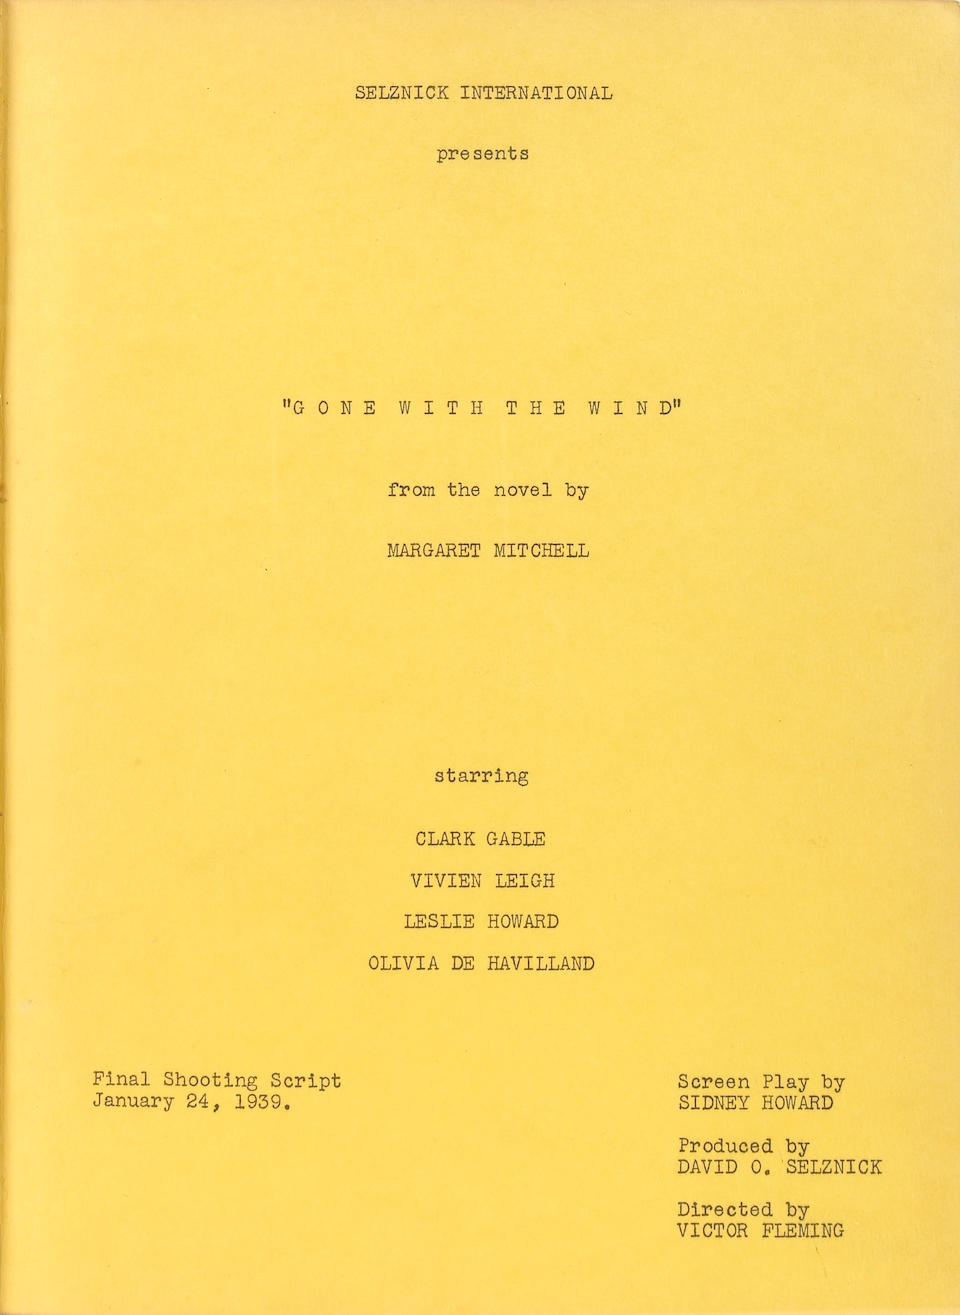 """A Hattie McDaniel owned 'presentation copy' script signed and gifted to her by David O. Selznick from """"Gone With The Wind"""""""